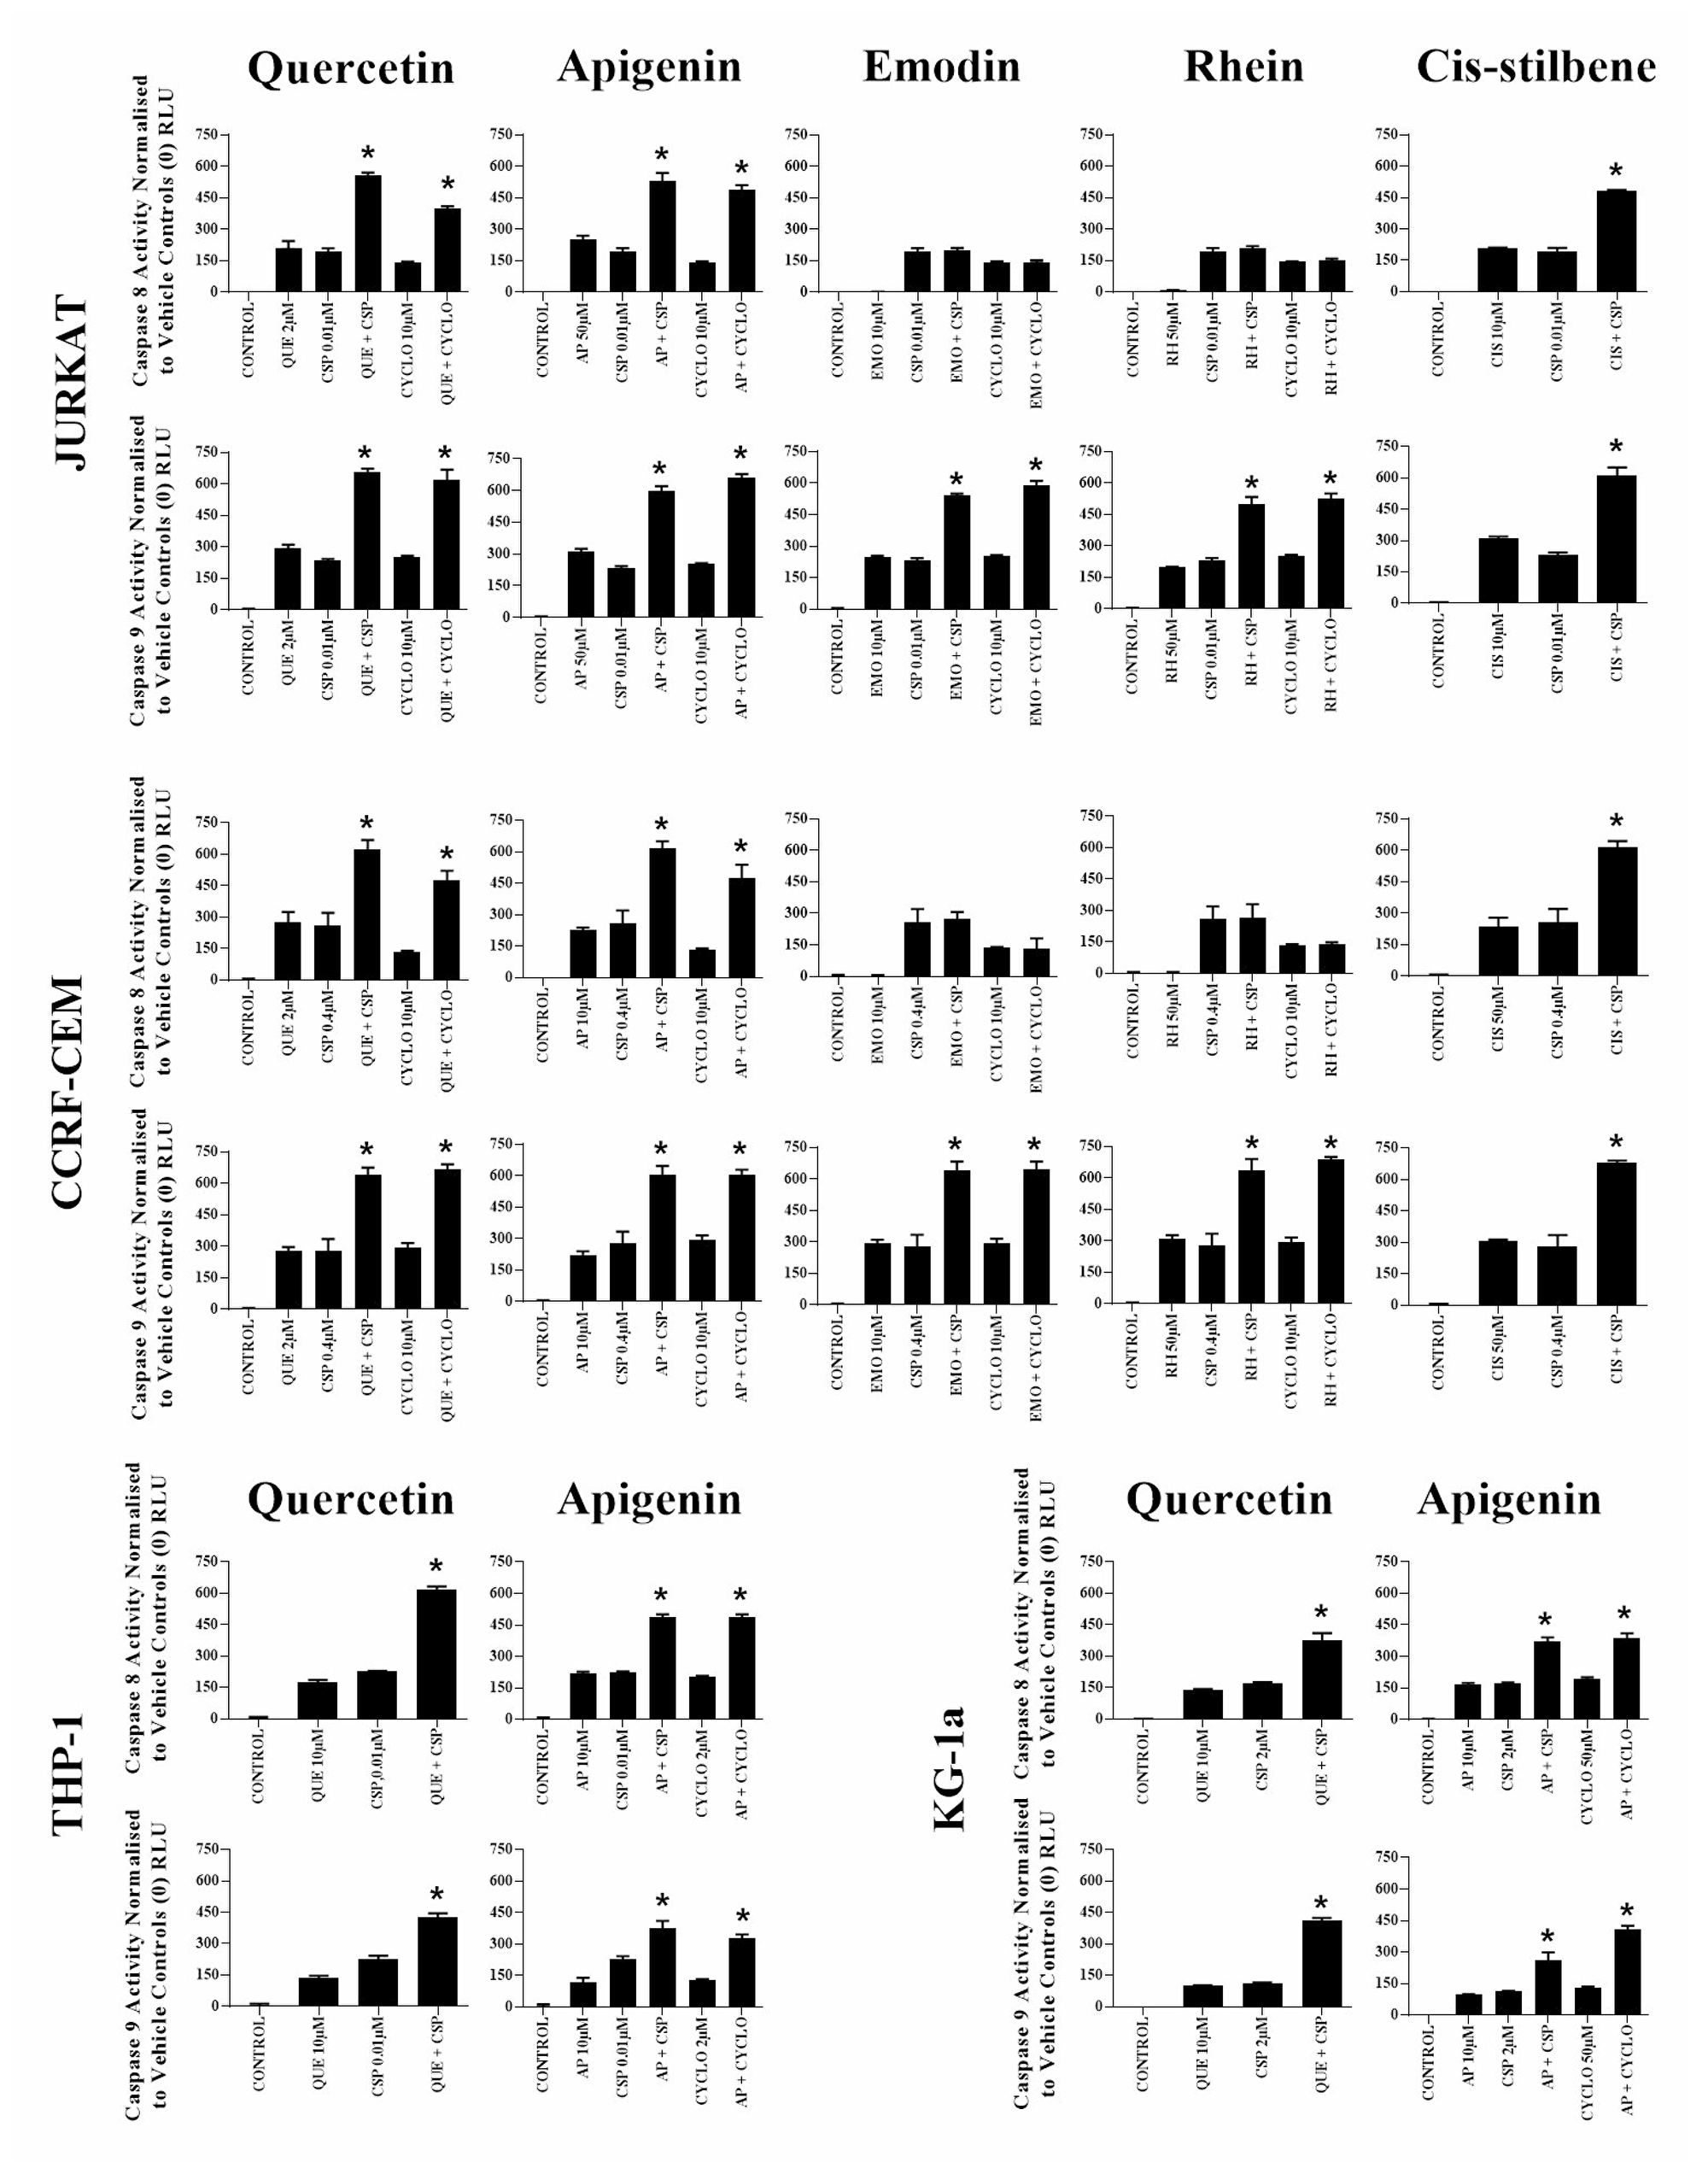 The effect of two alkylating agents: cisplatin (CSP) and cyclophosphamide (CYCLO) on caspases 8 and 9 activity when used in combination with quercetin (QUE), apigenin (AP), emodin (EMO), rhein (RH) or cis-stilbene (CIS) in lymphoid leukaemia cell lines (Jurkat and CCRF-CEM); and when used in combination with QUE or AP in myeloid leukaemia cell lines (THP-1 and KG-1a).